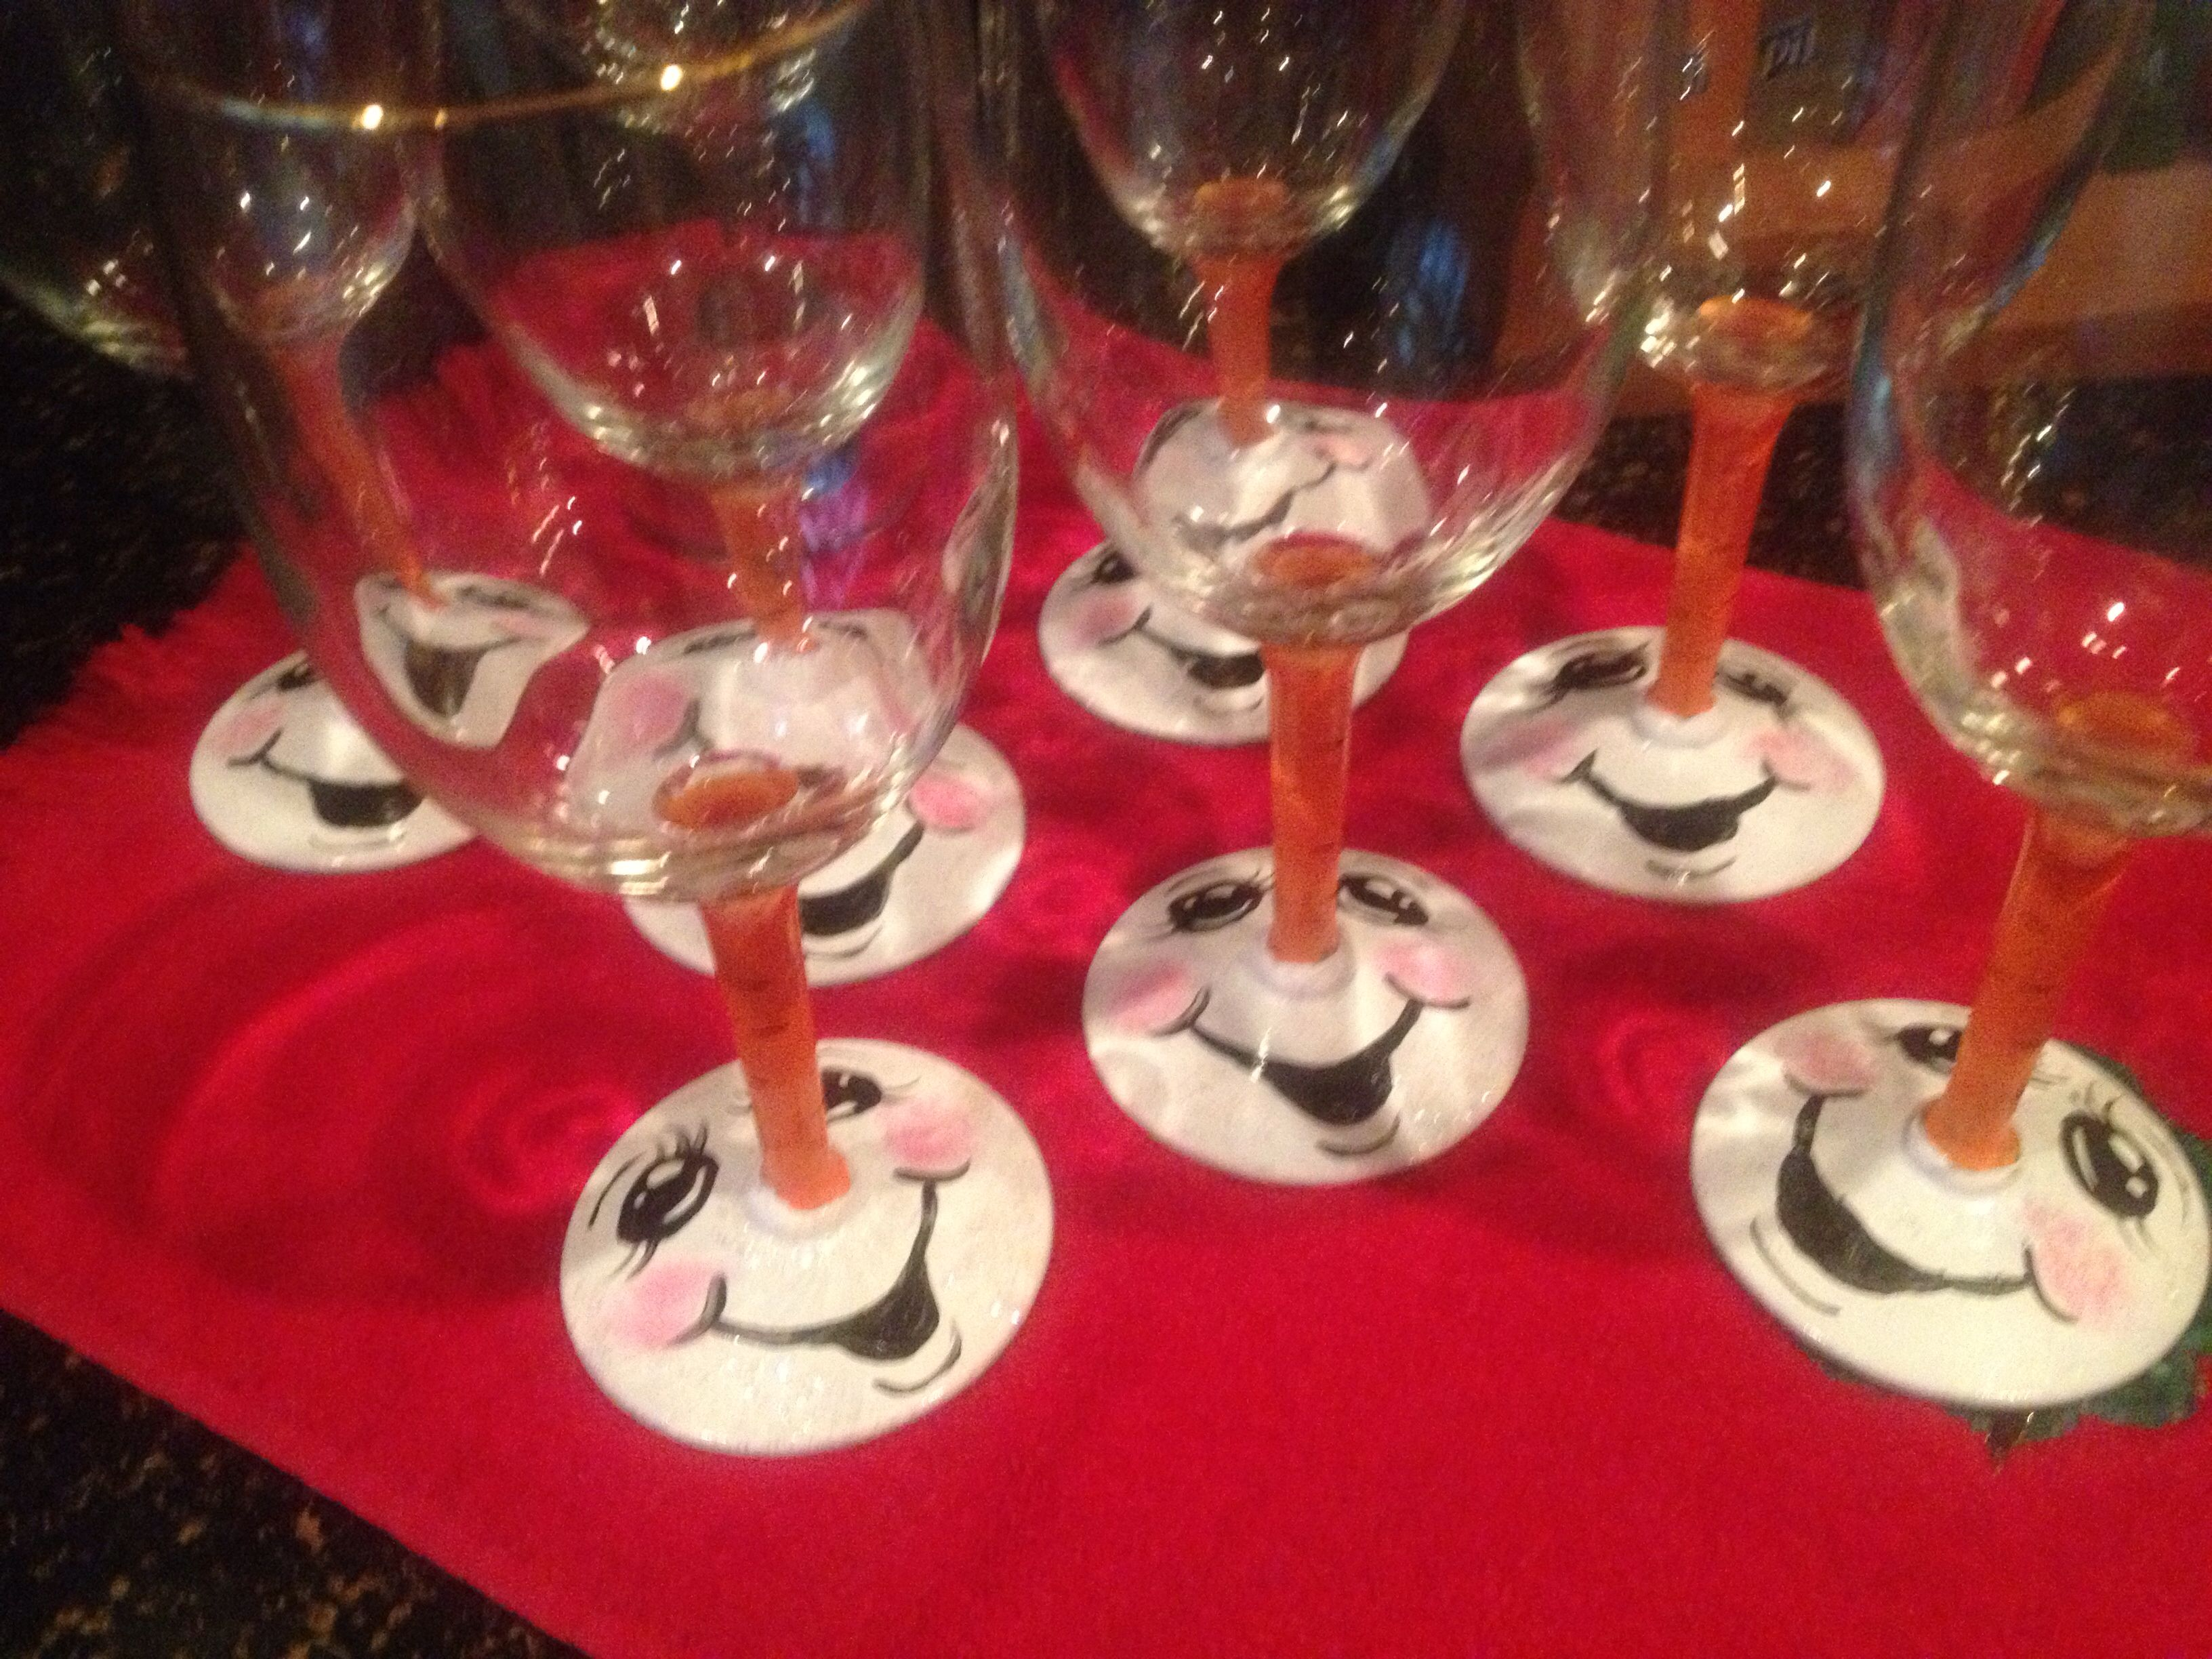 Cute Snowman Painted Wine Glasses Decorated Wine Glasses Wine Glass Crafts Hand Painted Wine Glasses